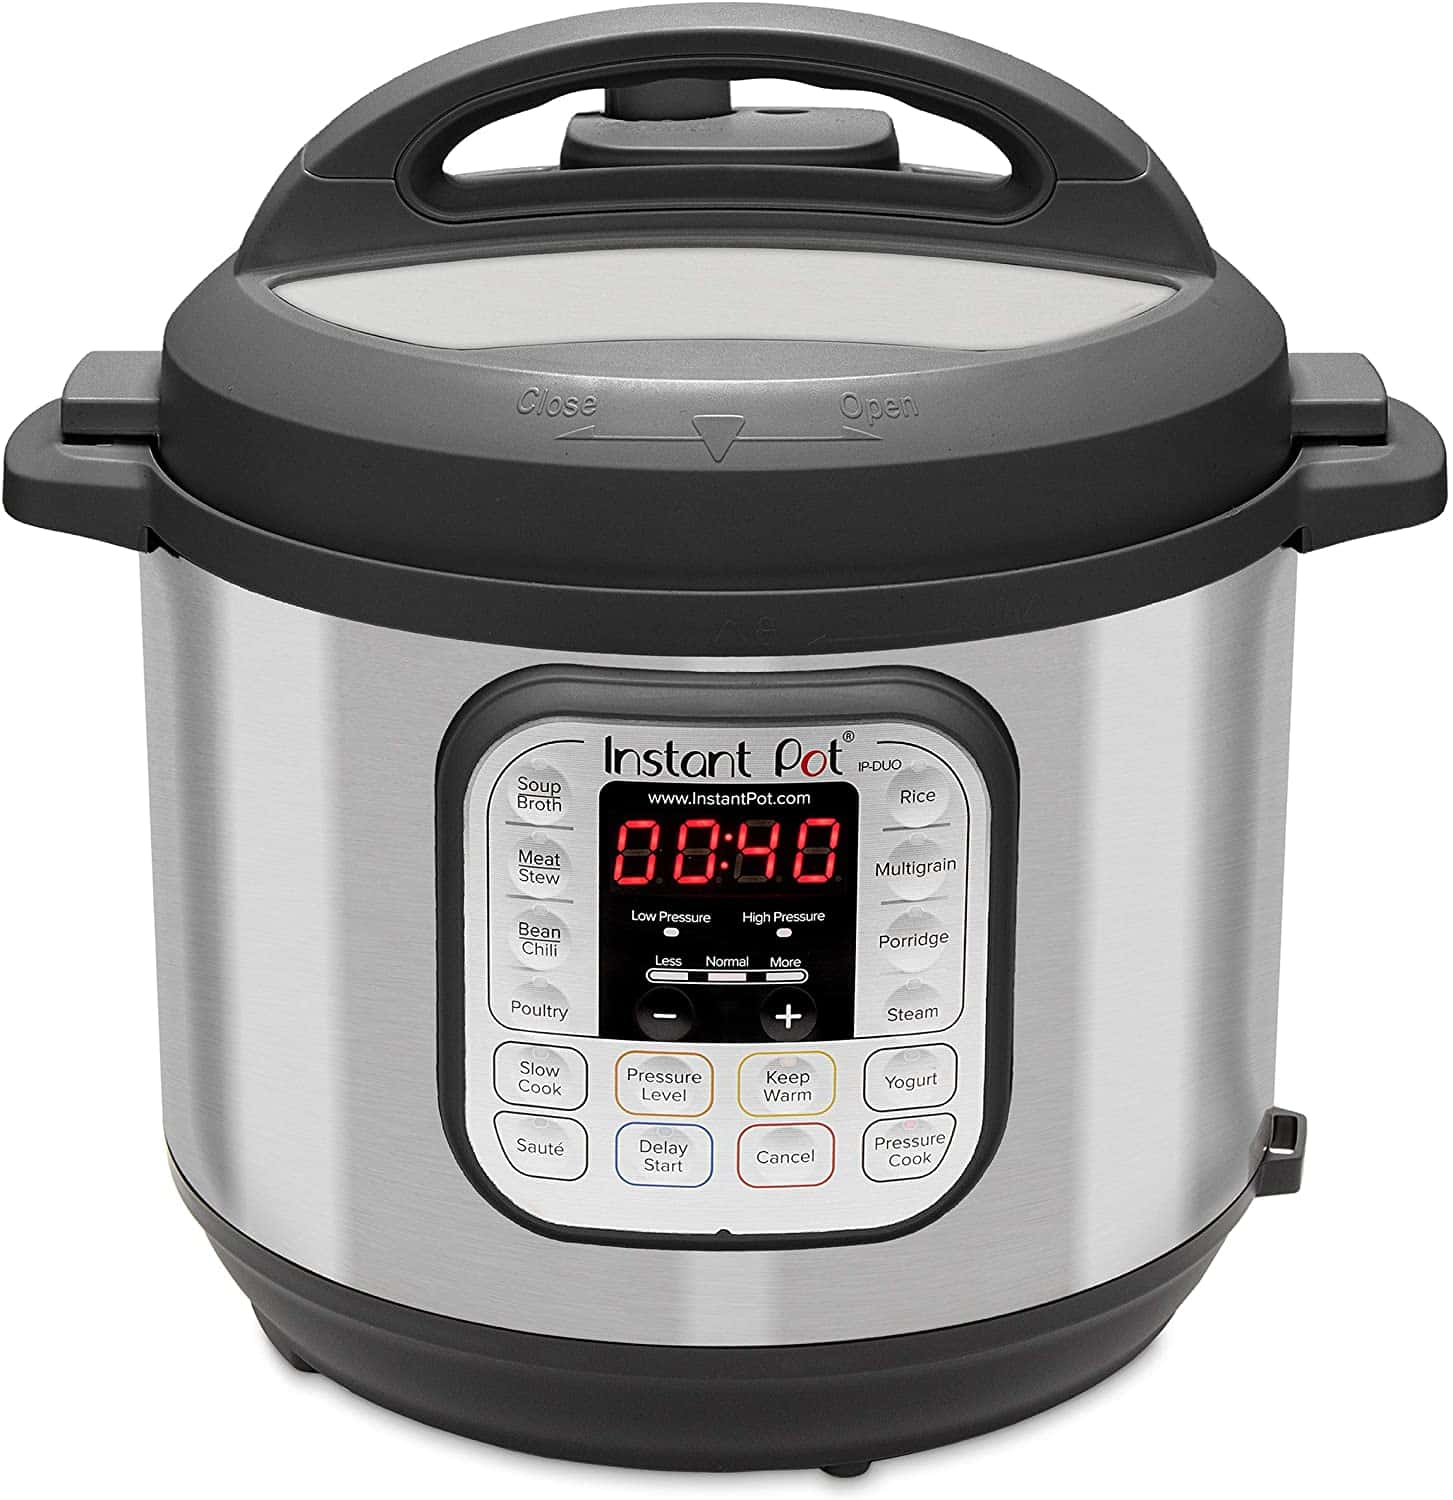 Instant Pot Duo 7 Qt electric pressure cooker